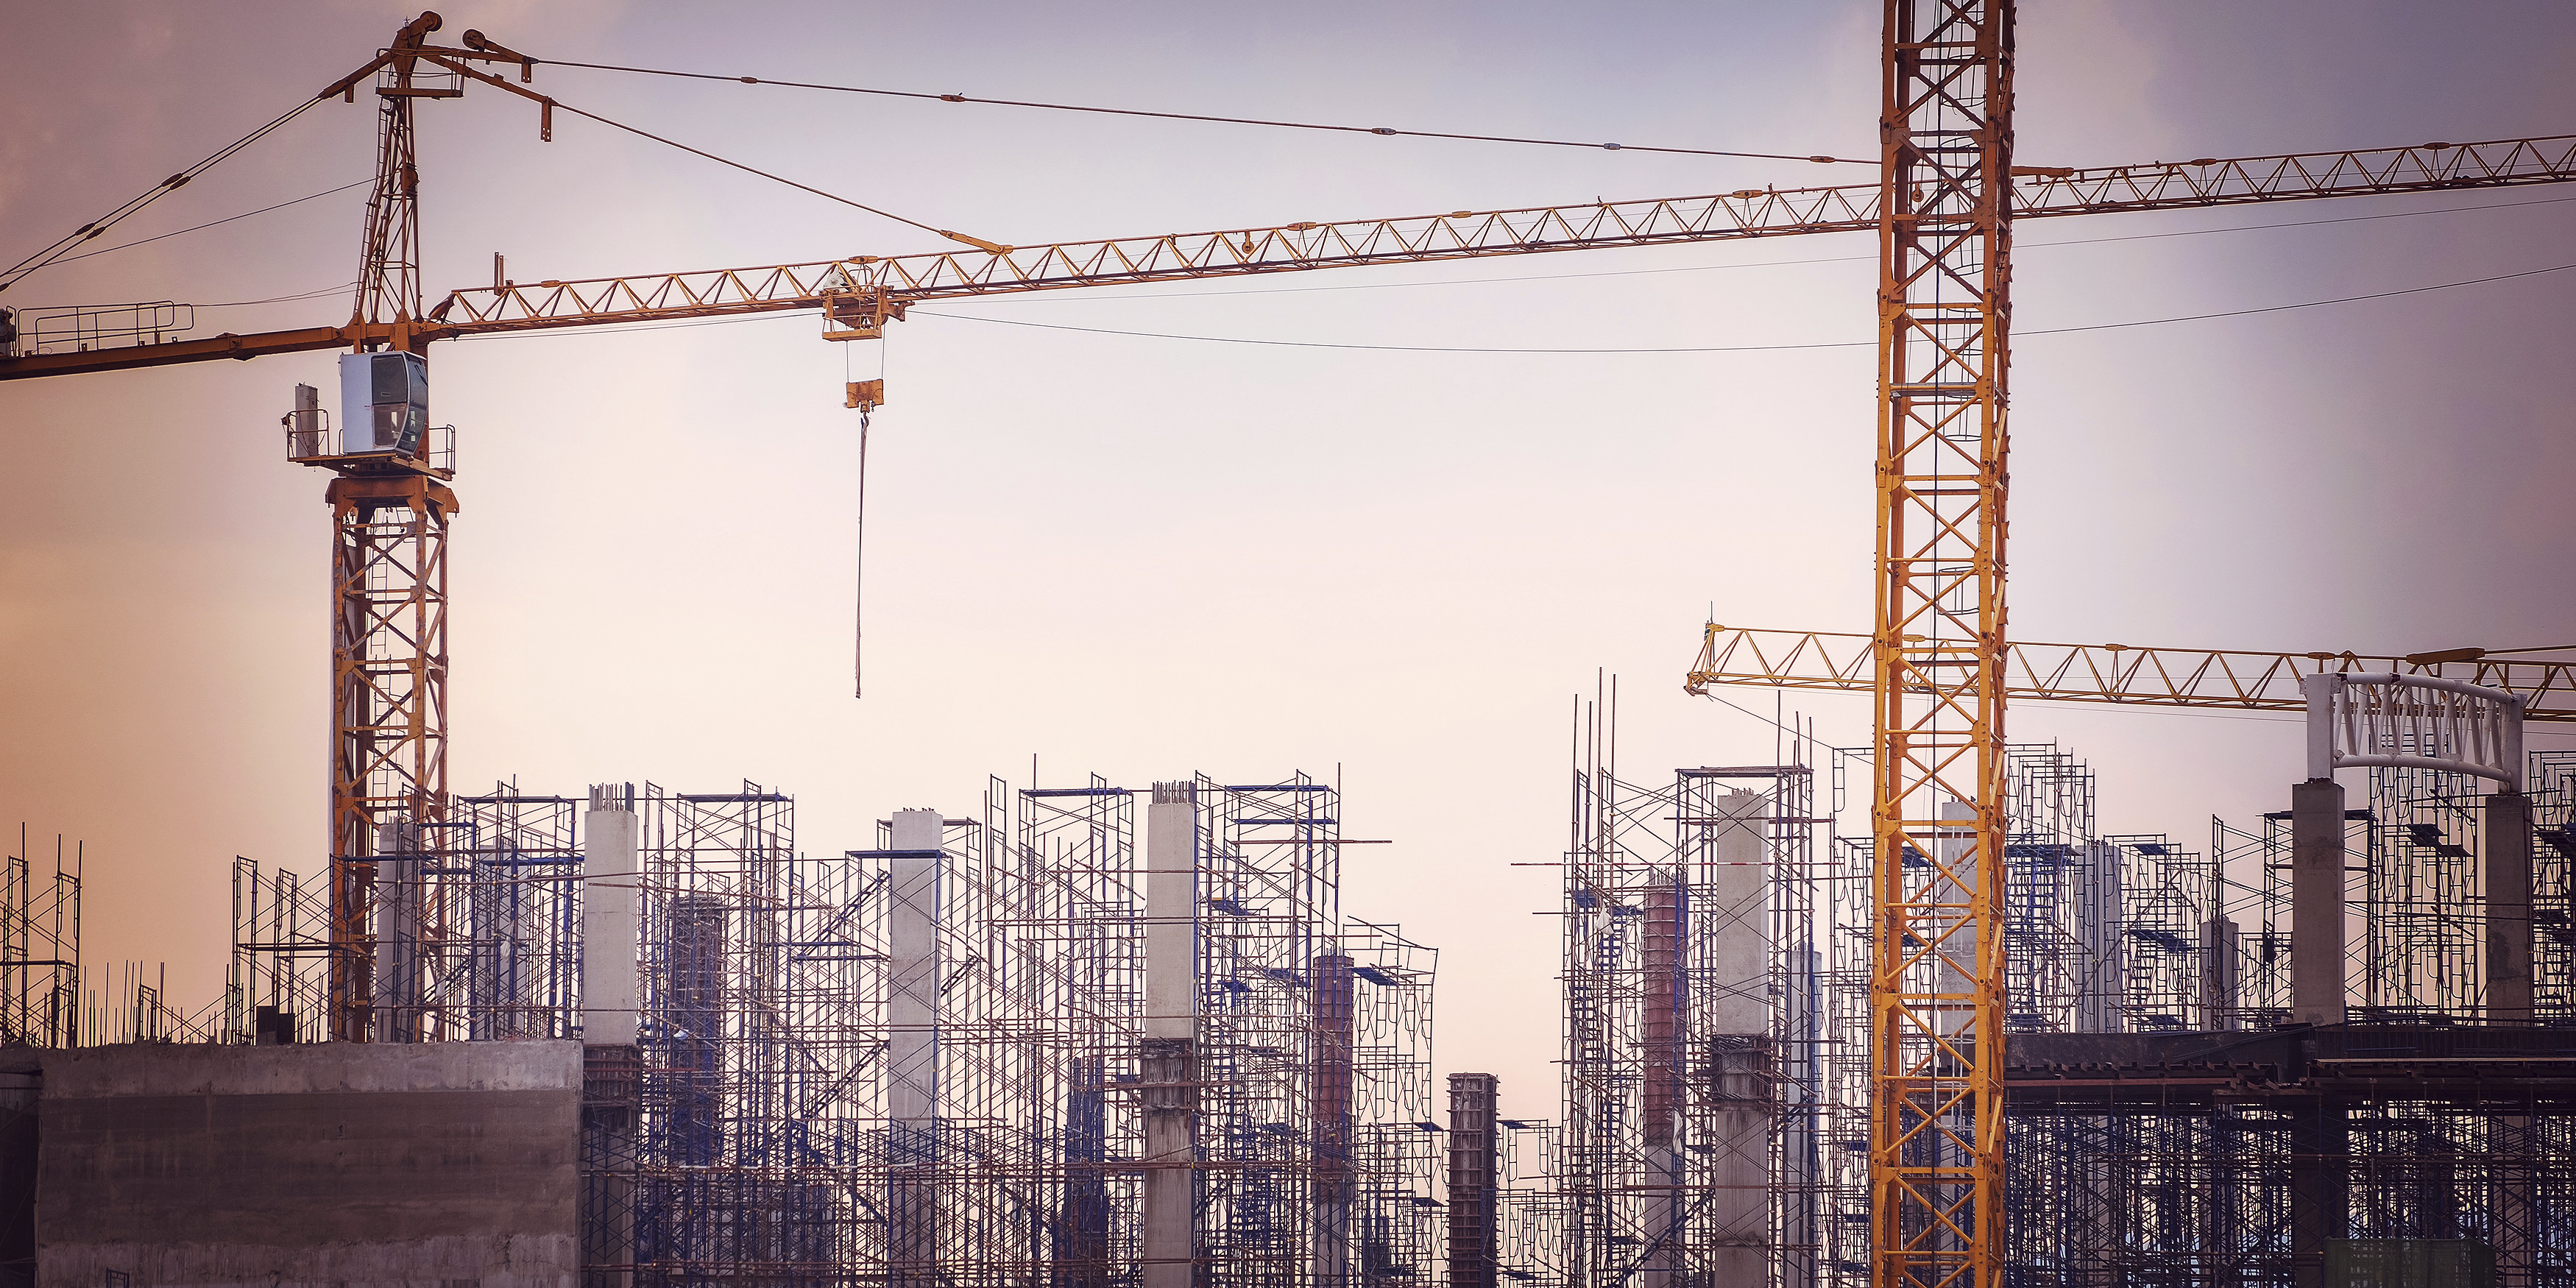 Construction site with cranes on sky background, retro tone image